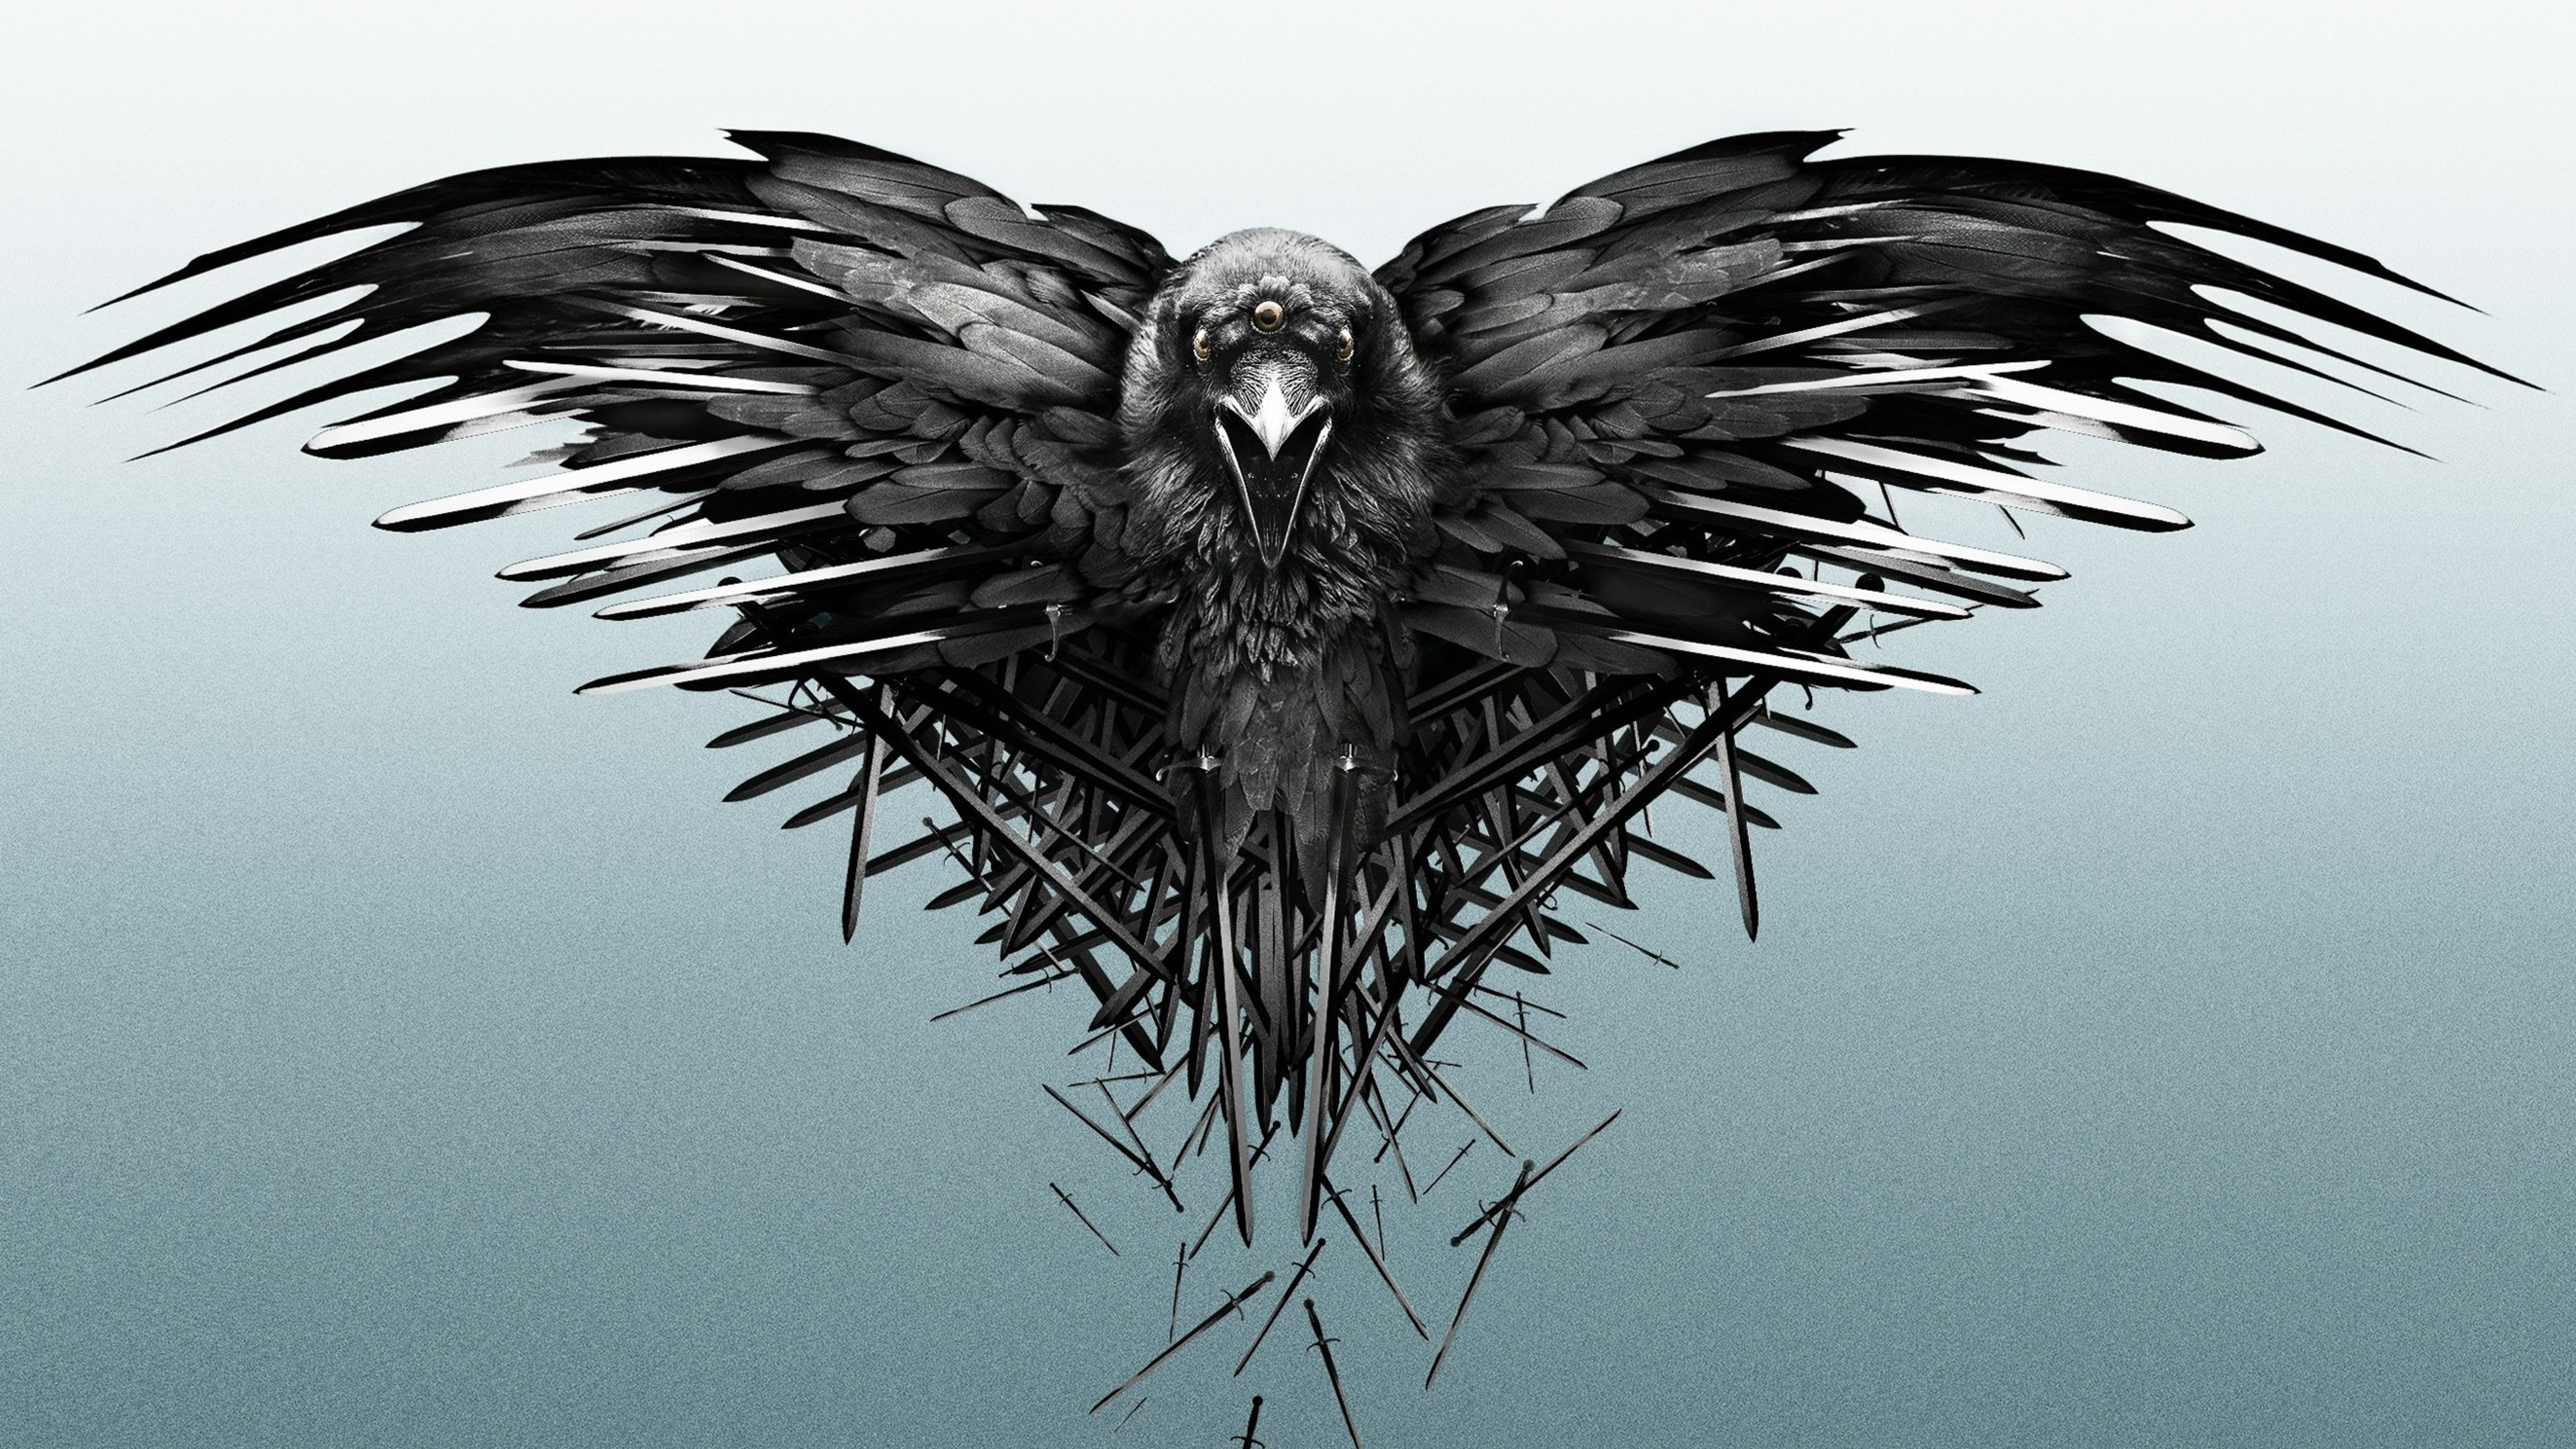 Game Of Thrones Raven